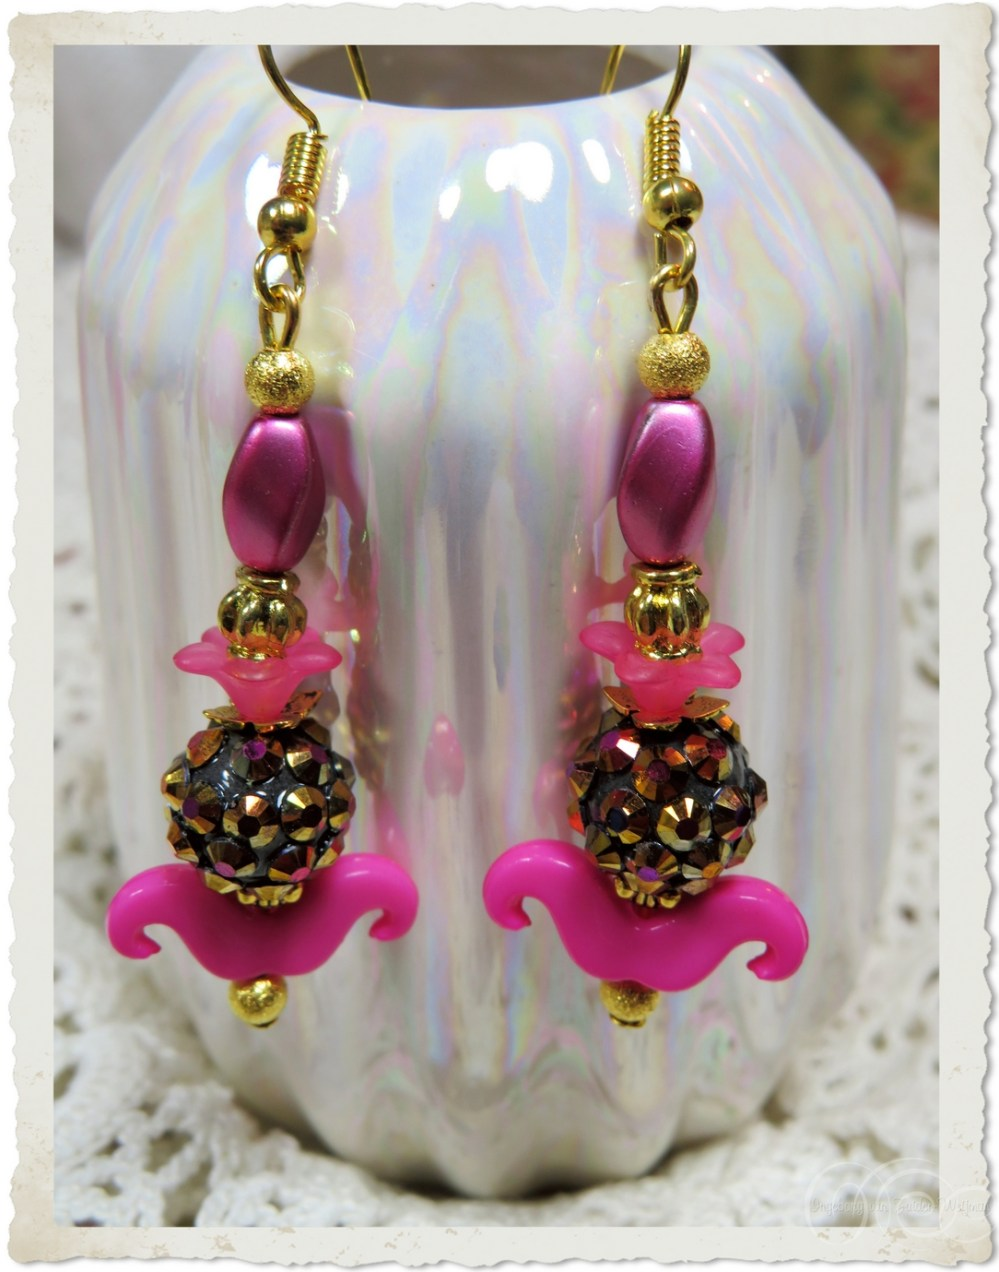 Pink gold earrings with a smile